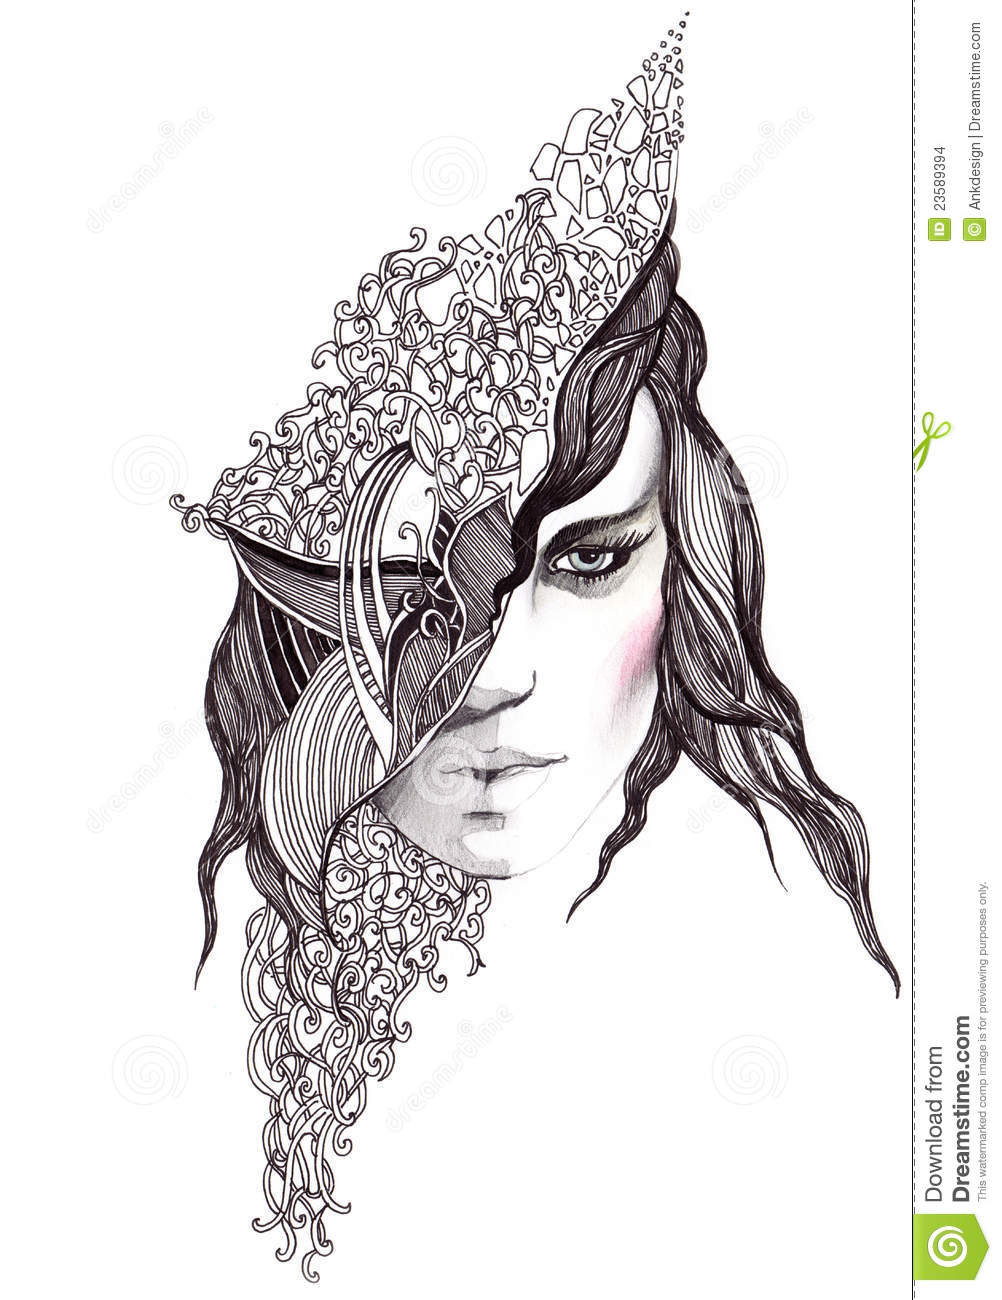 Abstract Woman Face Stock Images - Image: 23589394